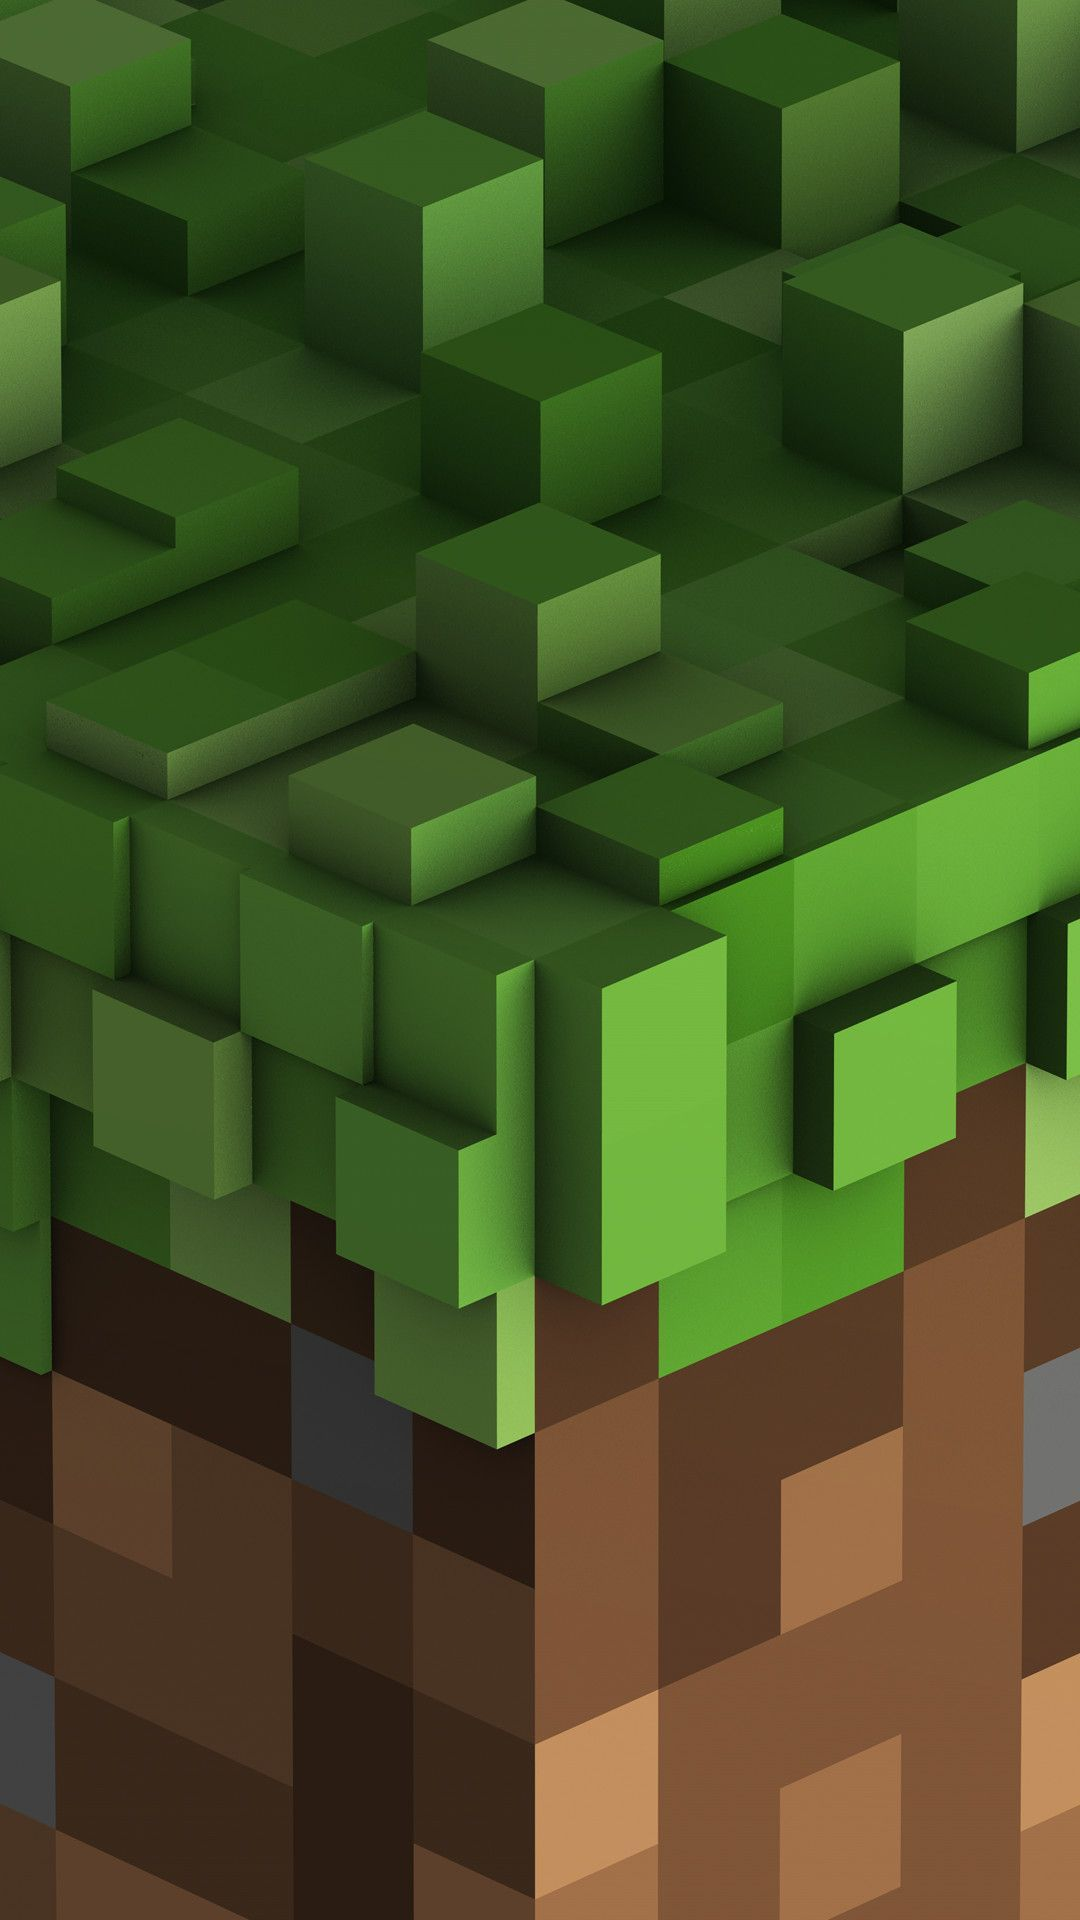 Minecraft Wallpapers Picture Hupages Download Iphone Wallpapers Minecraft Wallpaper Minecraft Mobile Android Wallpaper